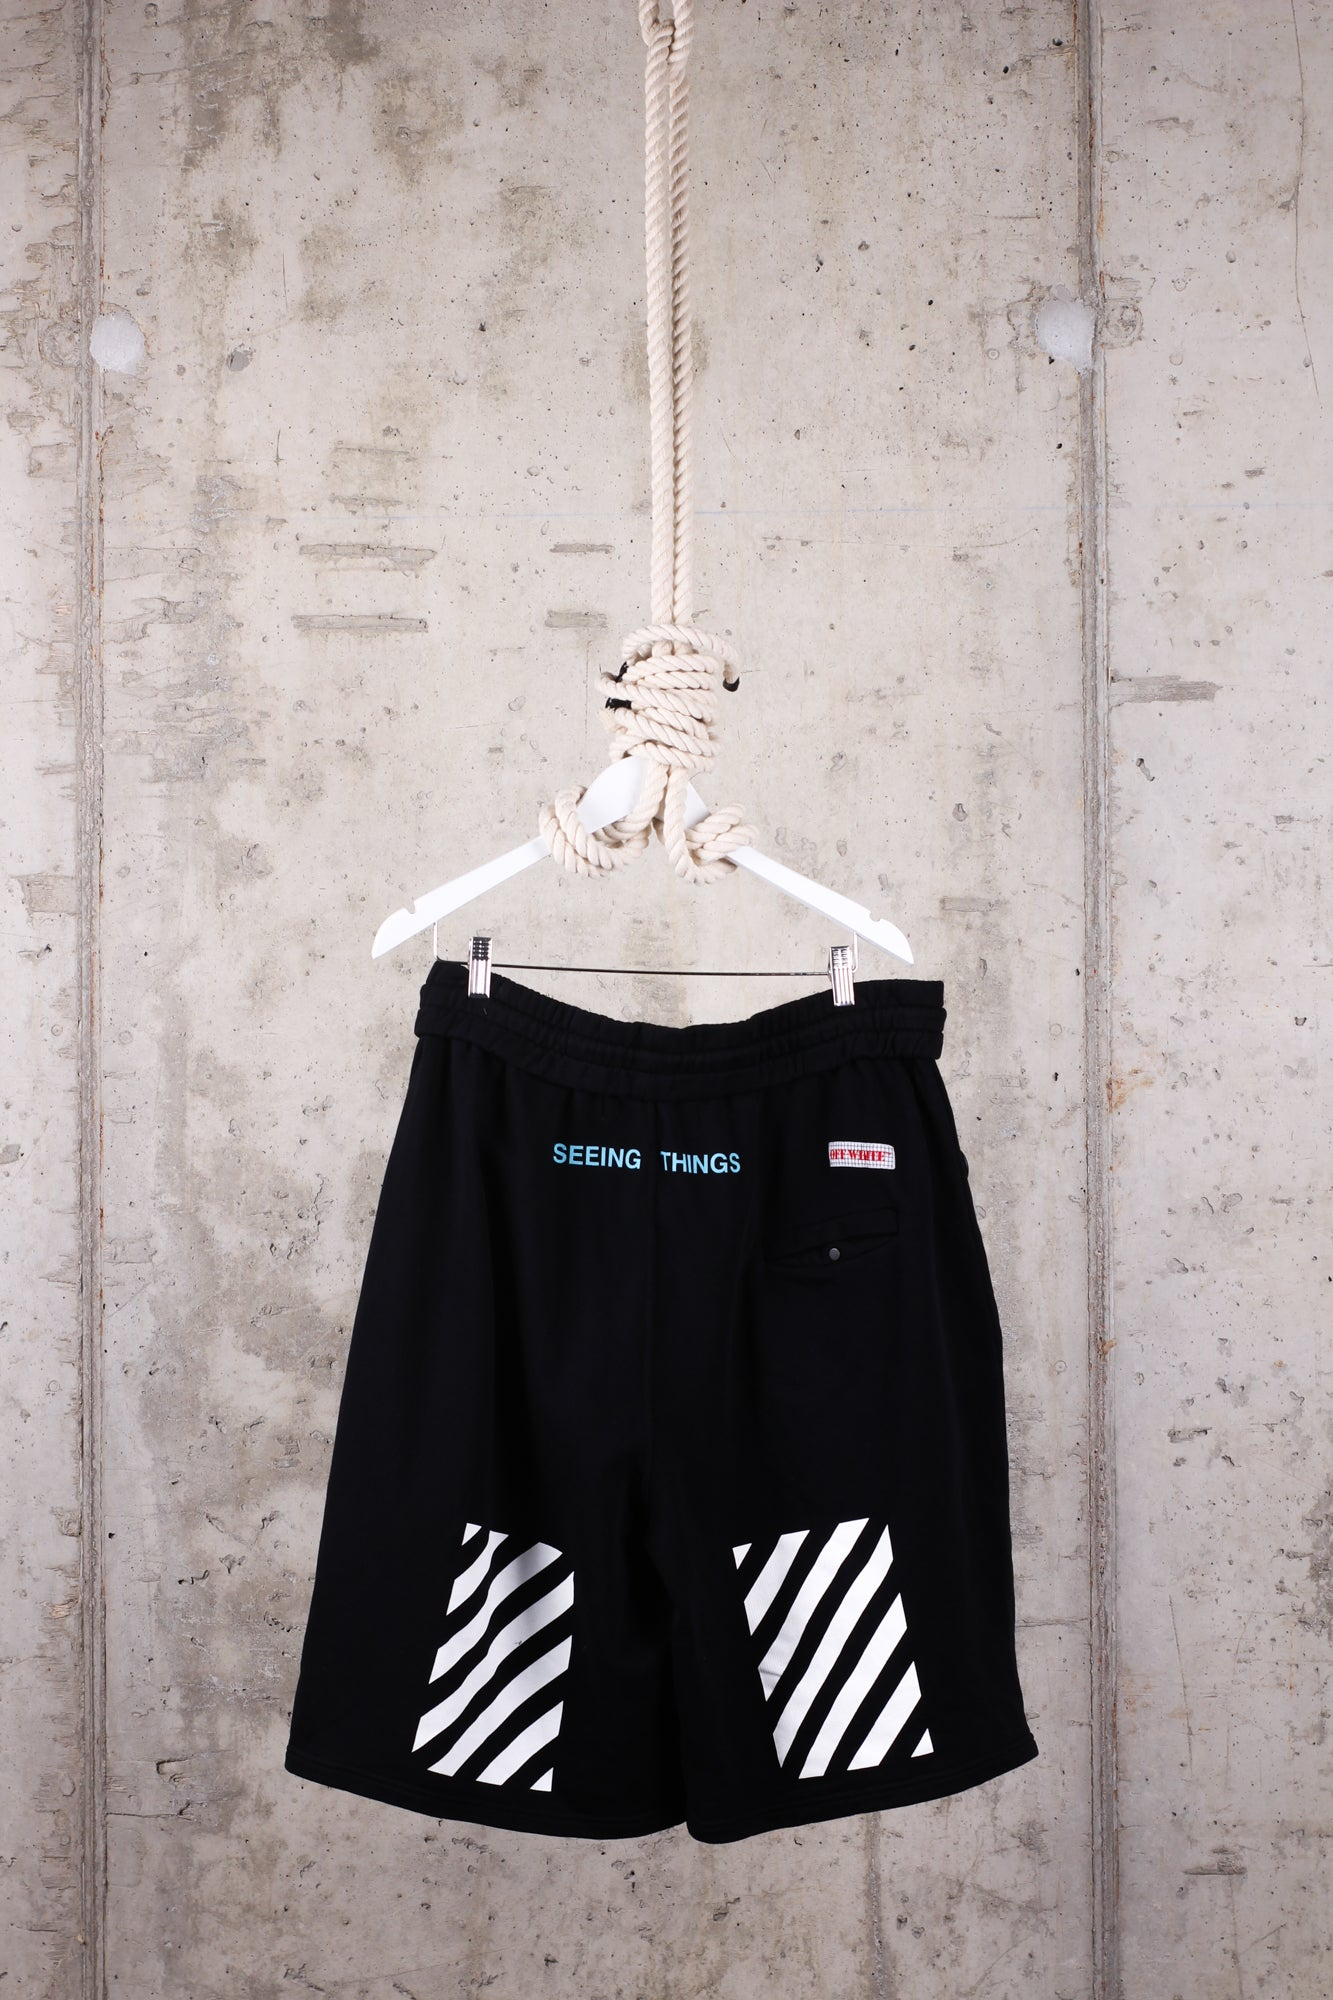 OFF-WHITE Seeing Things Shorts - Size Large